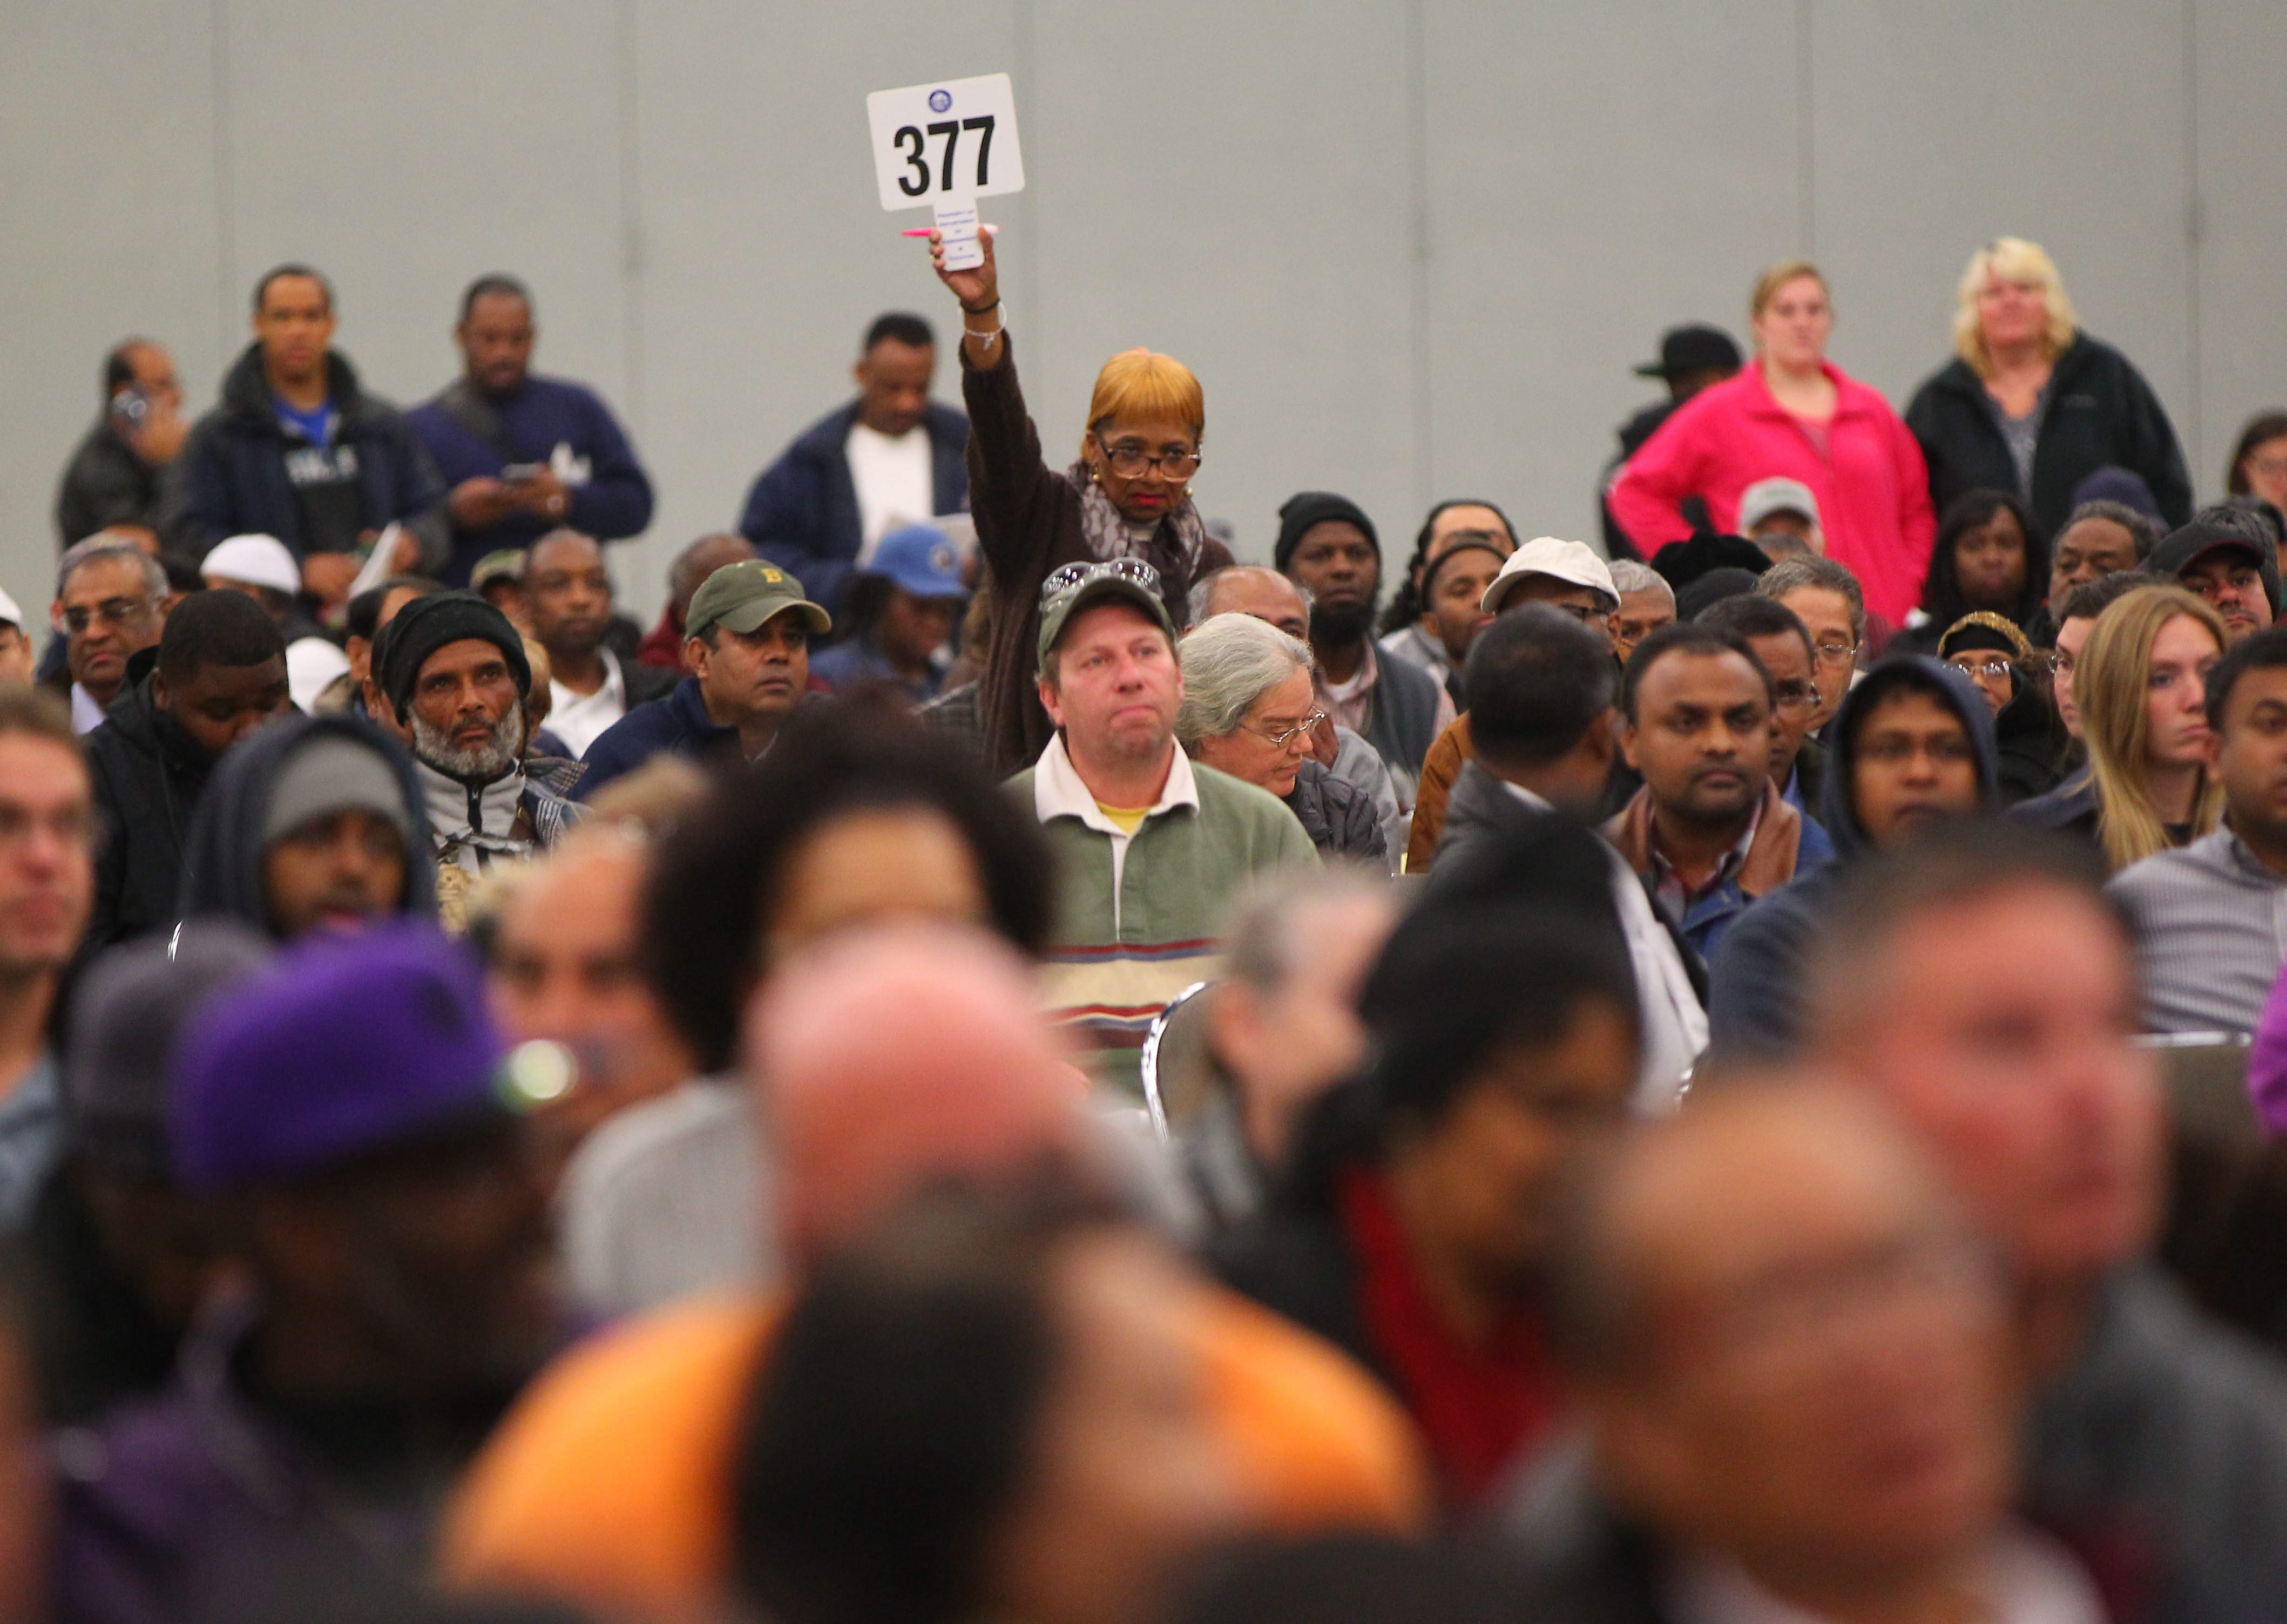 People bid on property during an auction held at the Buffalo Niagara Convention Center on Oct. 27, 2015. A bill sponsored by State Sen. Timothy M. Kennedy and Assemblyman Sean M. Ryan has been amended to require the city to notify the foreclosed property owners that the money belongs to them. (Mark Mulville/Buffalo News)